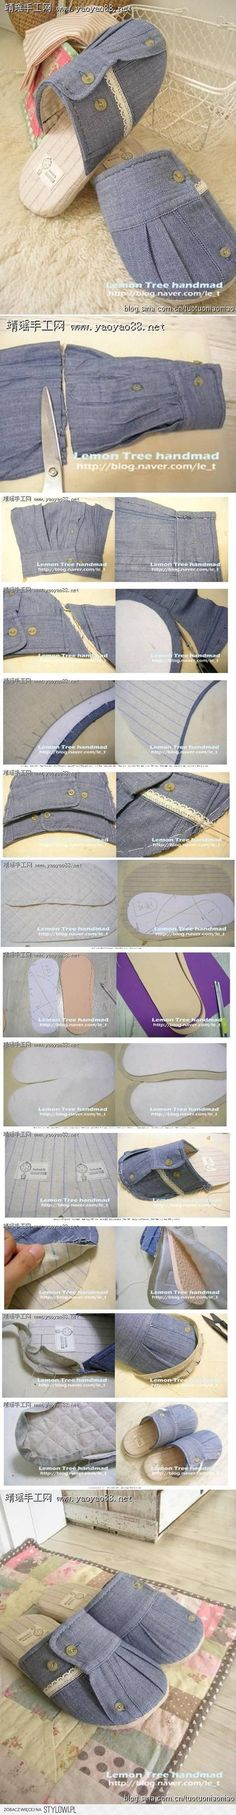 DIY Old Clothes Cuff Slipper, que hermosas pantuflas Fabric Crafts, Sewing Crafts, Sewing Projects, Diy Projects, Old Clothes, Sewing Clothes, Sewing Tutorials, Sewing Hacks, Free Tutorials